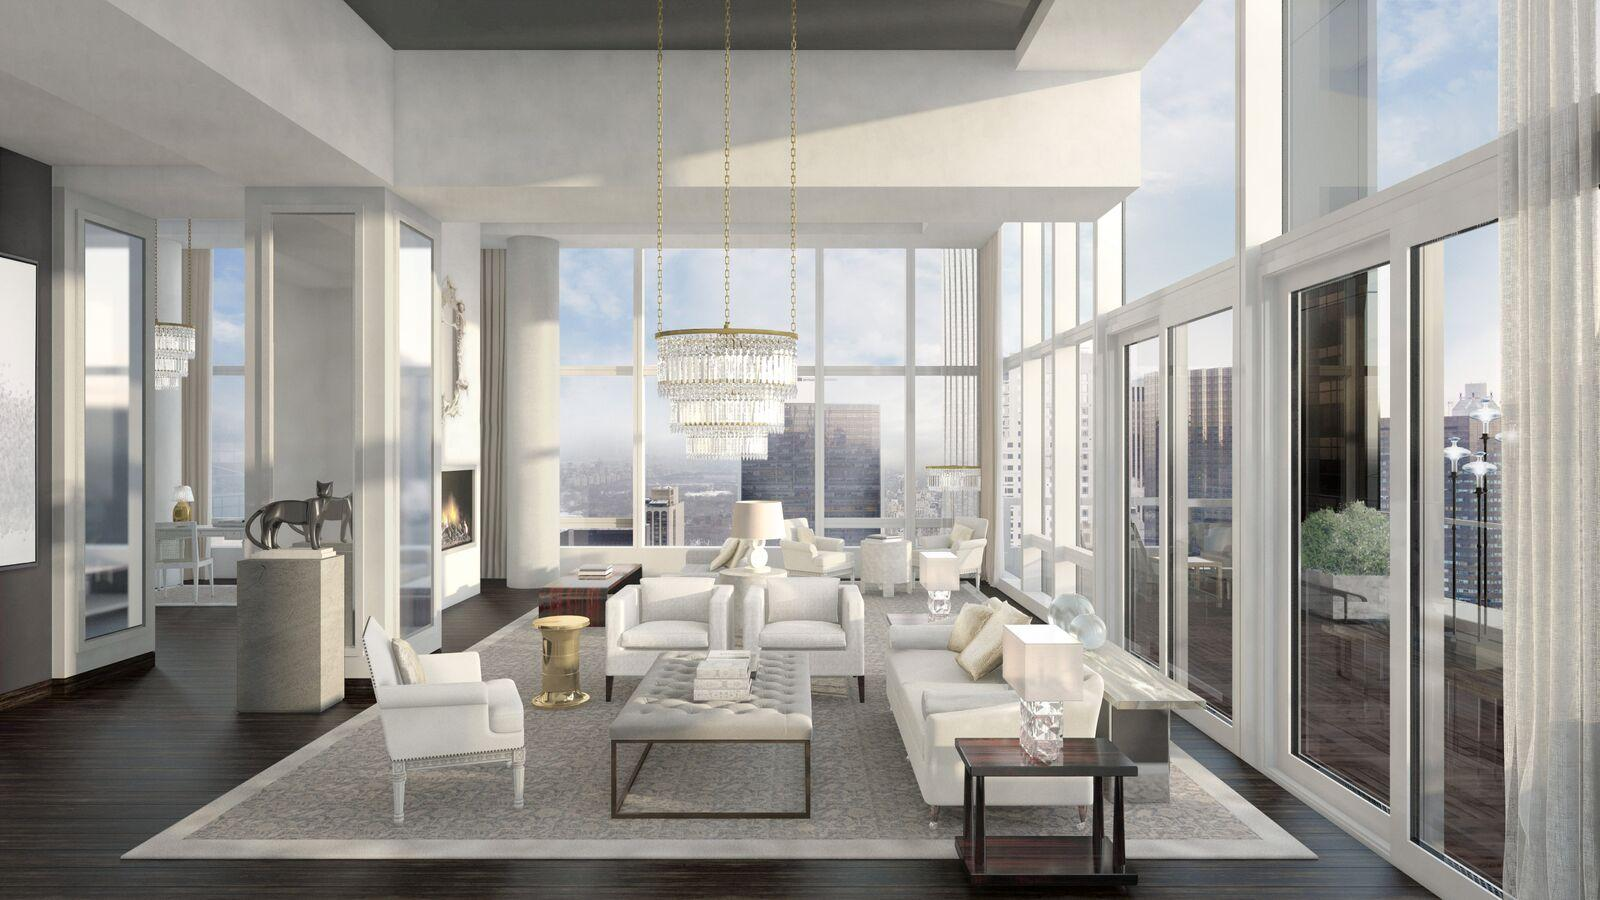 Condominium for Sale at BACCARAT HOTEL & RESIDENCES, Baccarat Hotel & Residences, 20 West 53rd Street New York, New York 10019 United States